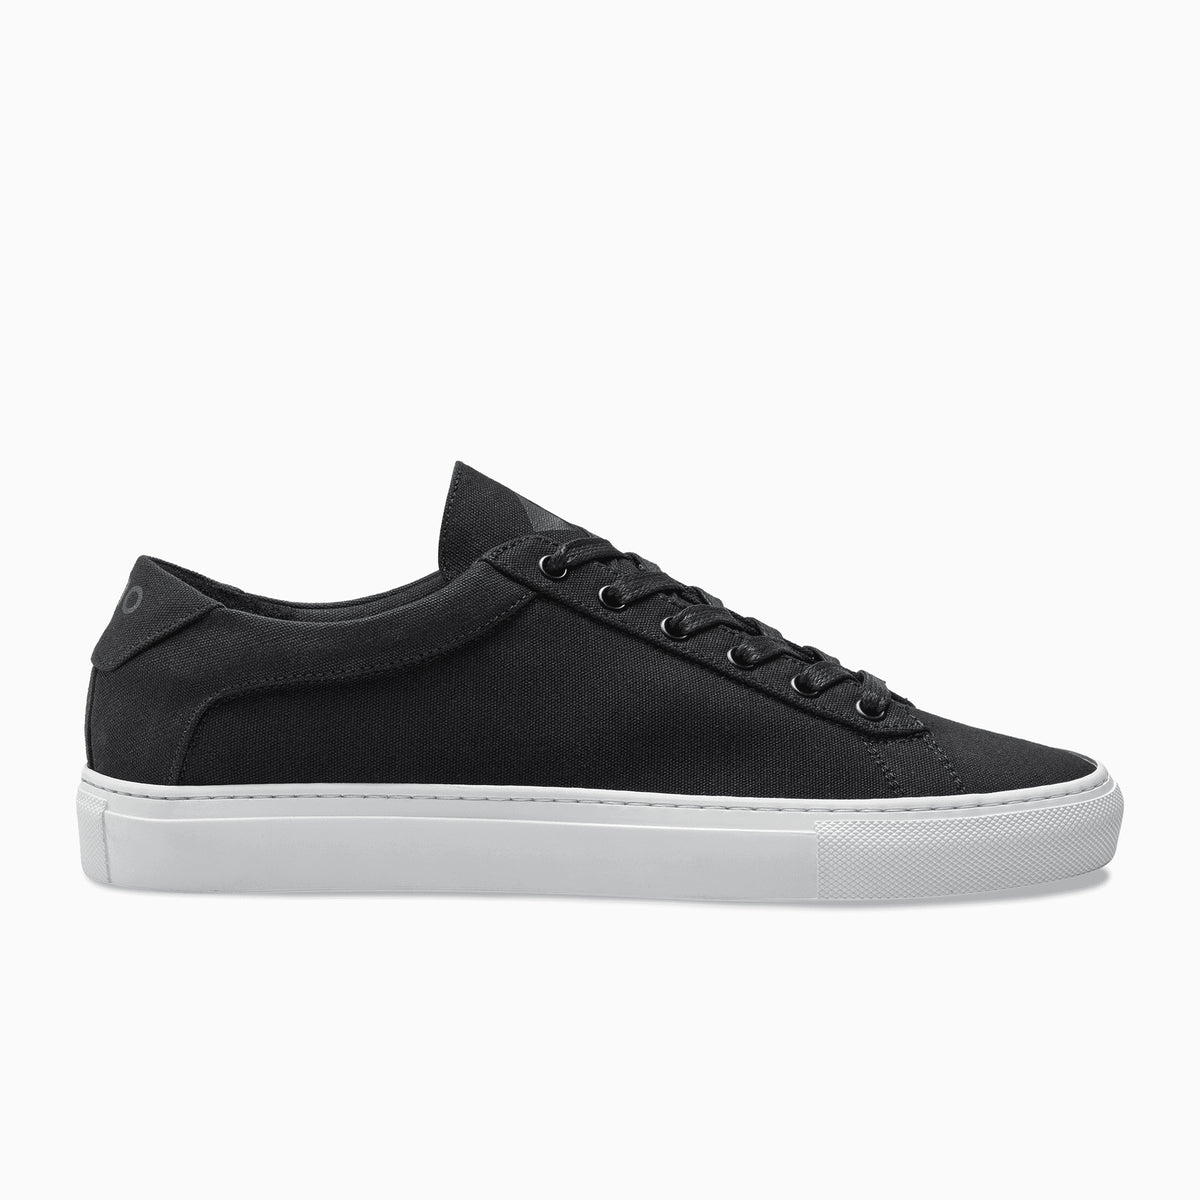 cfbb2ba174bfbb Men's Low Top Canvas Sneaker in Black | Capri Nero Canvas – KOIO